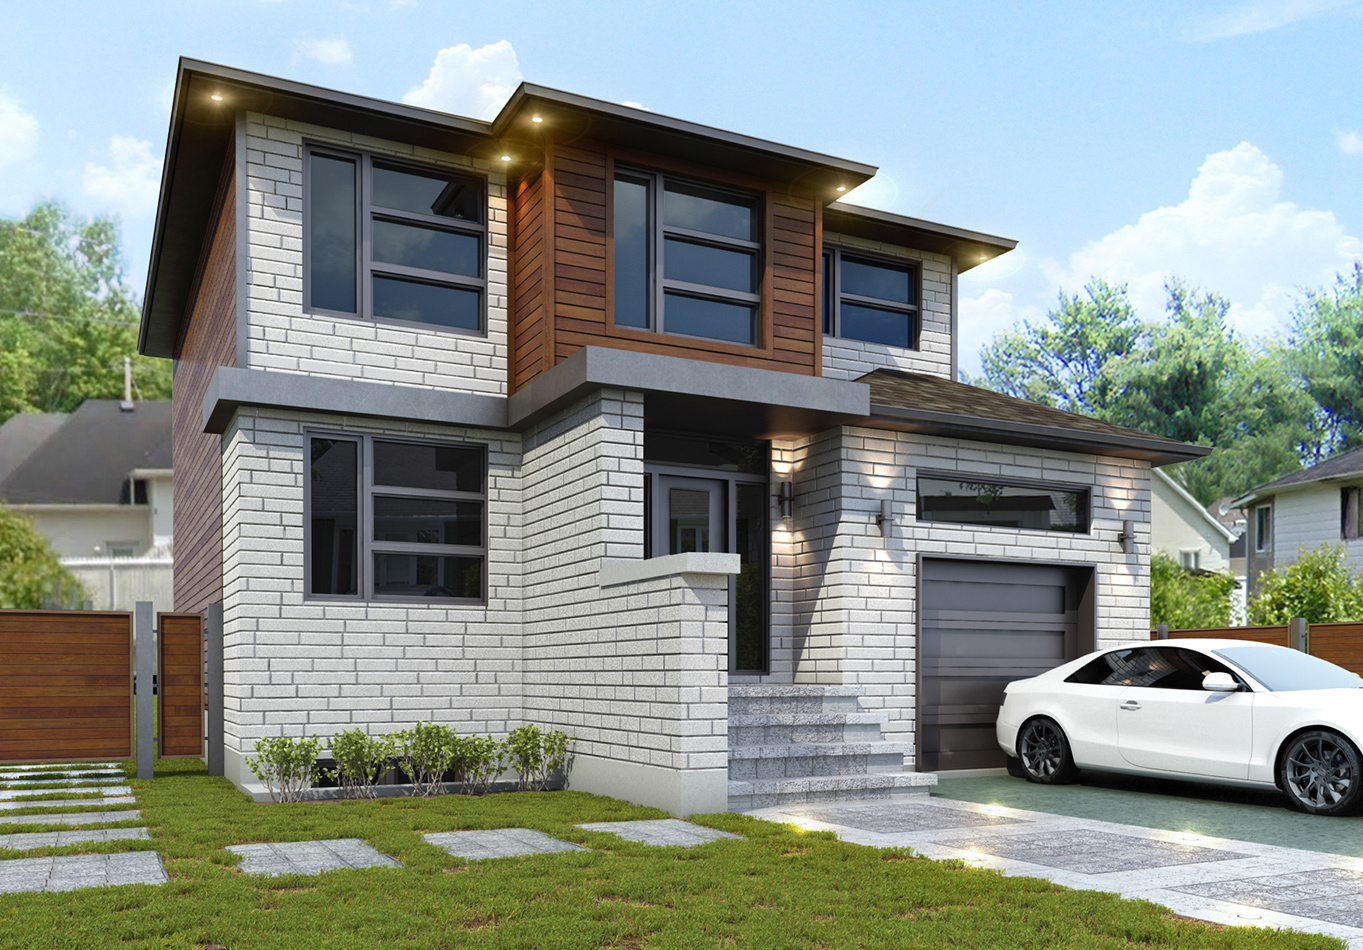 Maison 3d laval construction neuve for Decoration maison laval